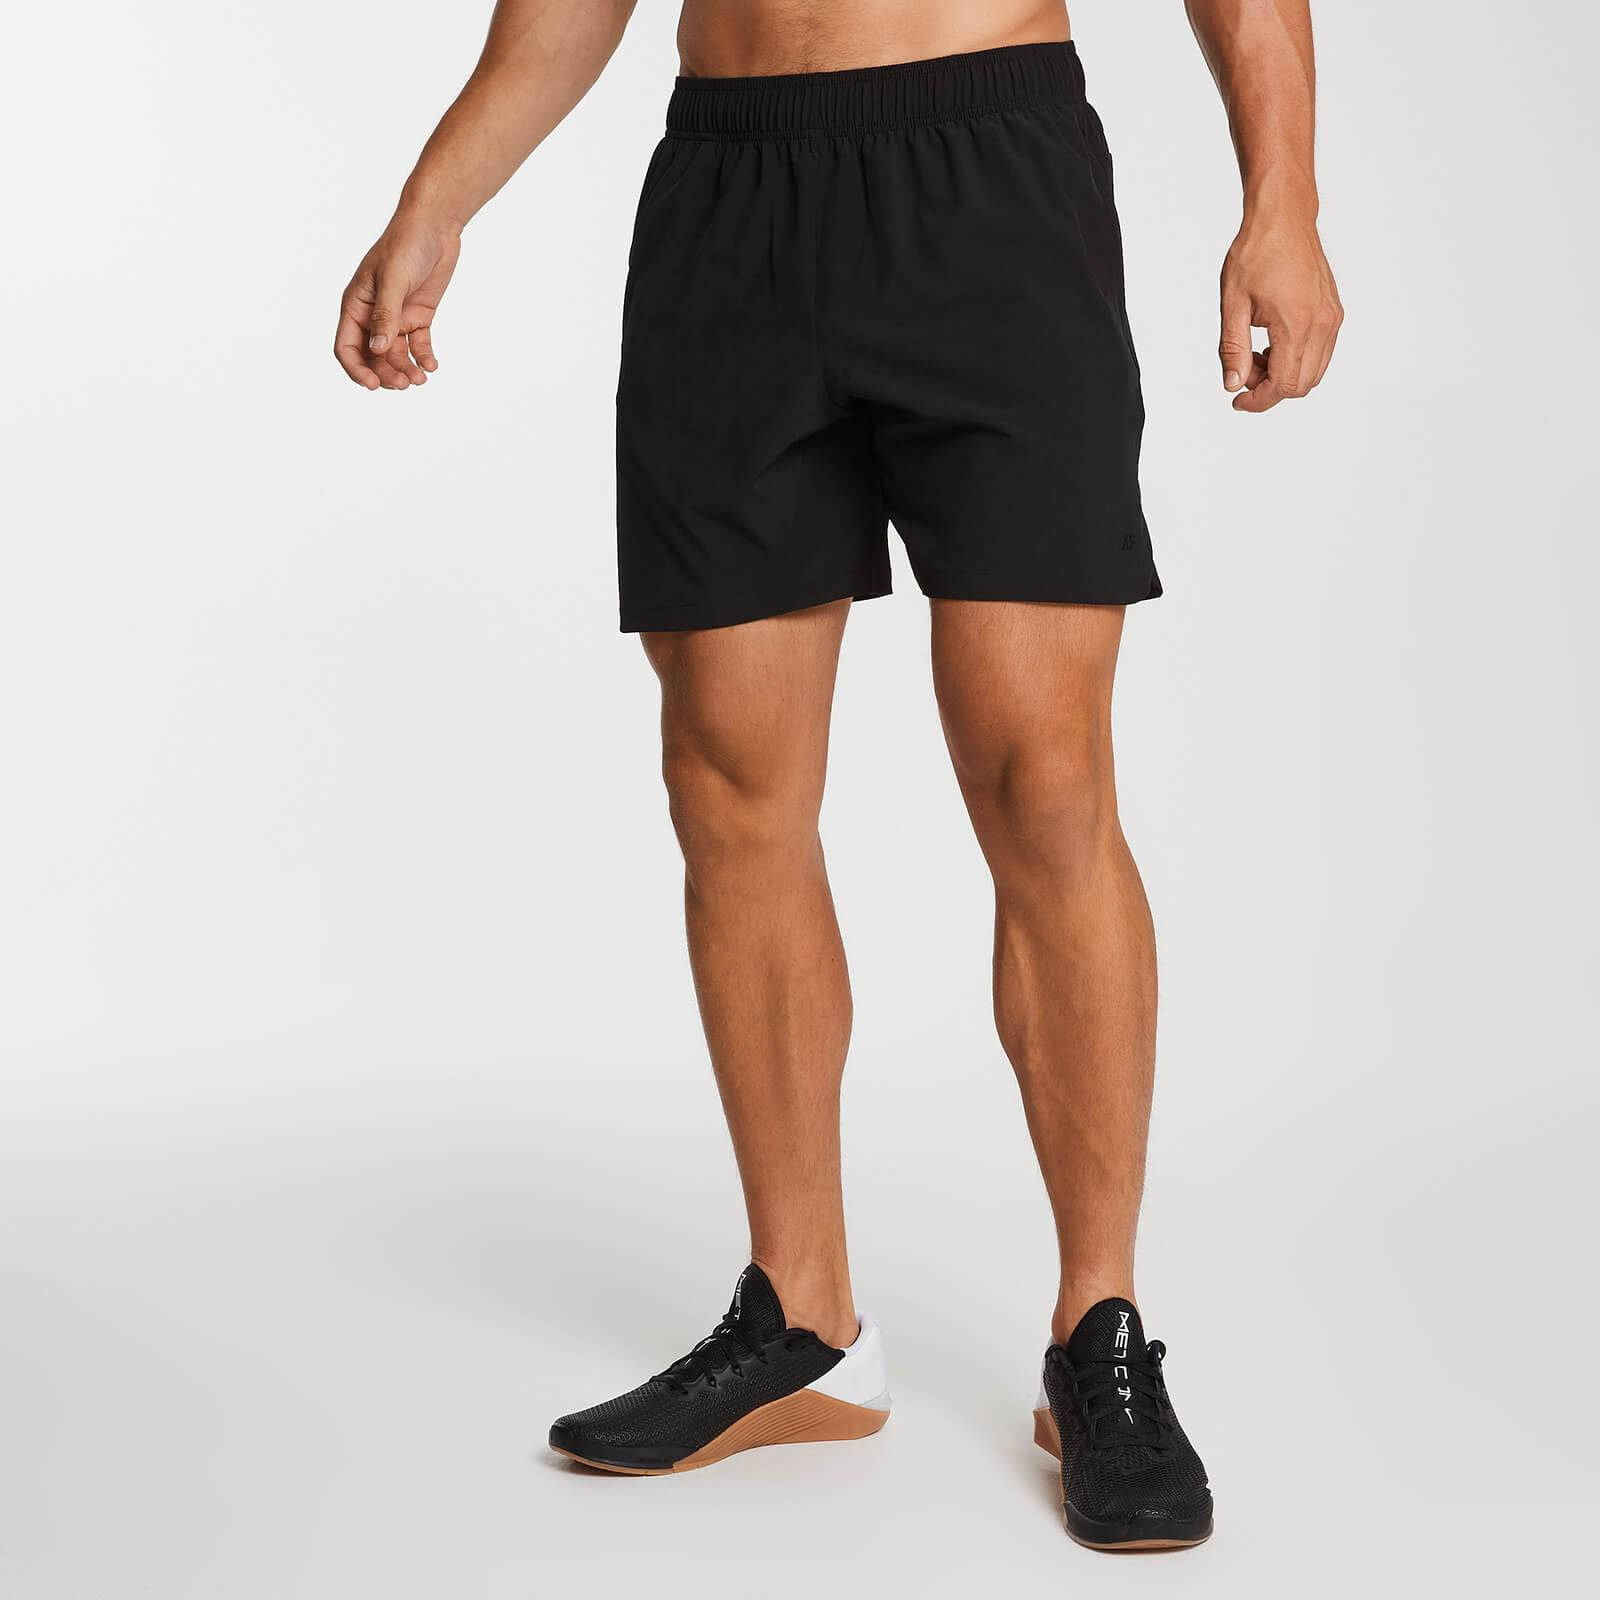 MP Essential Woven Training Shorts - Sort - M